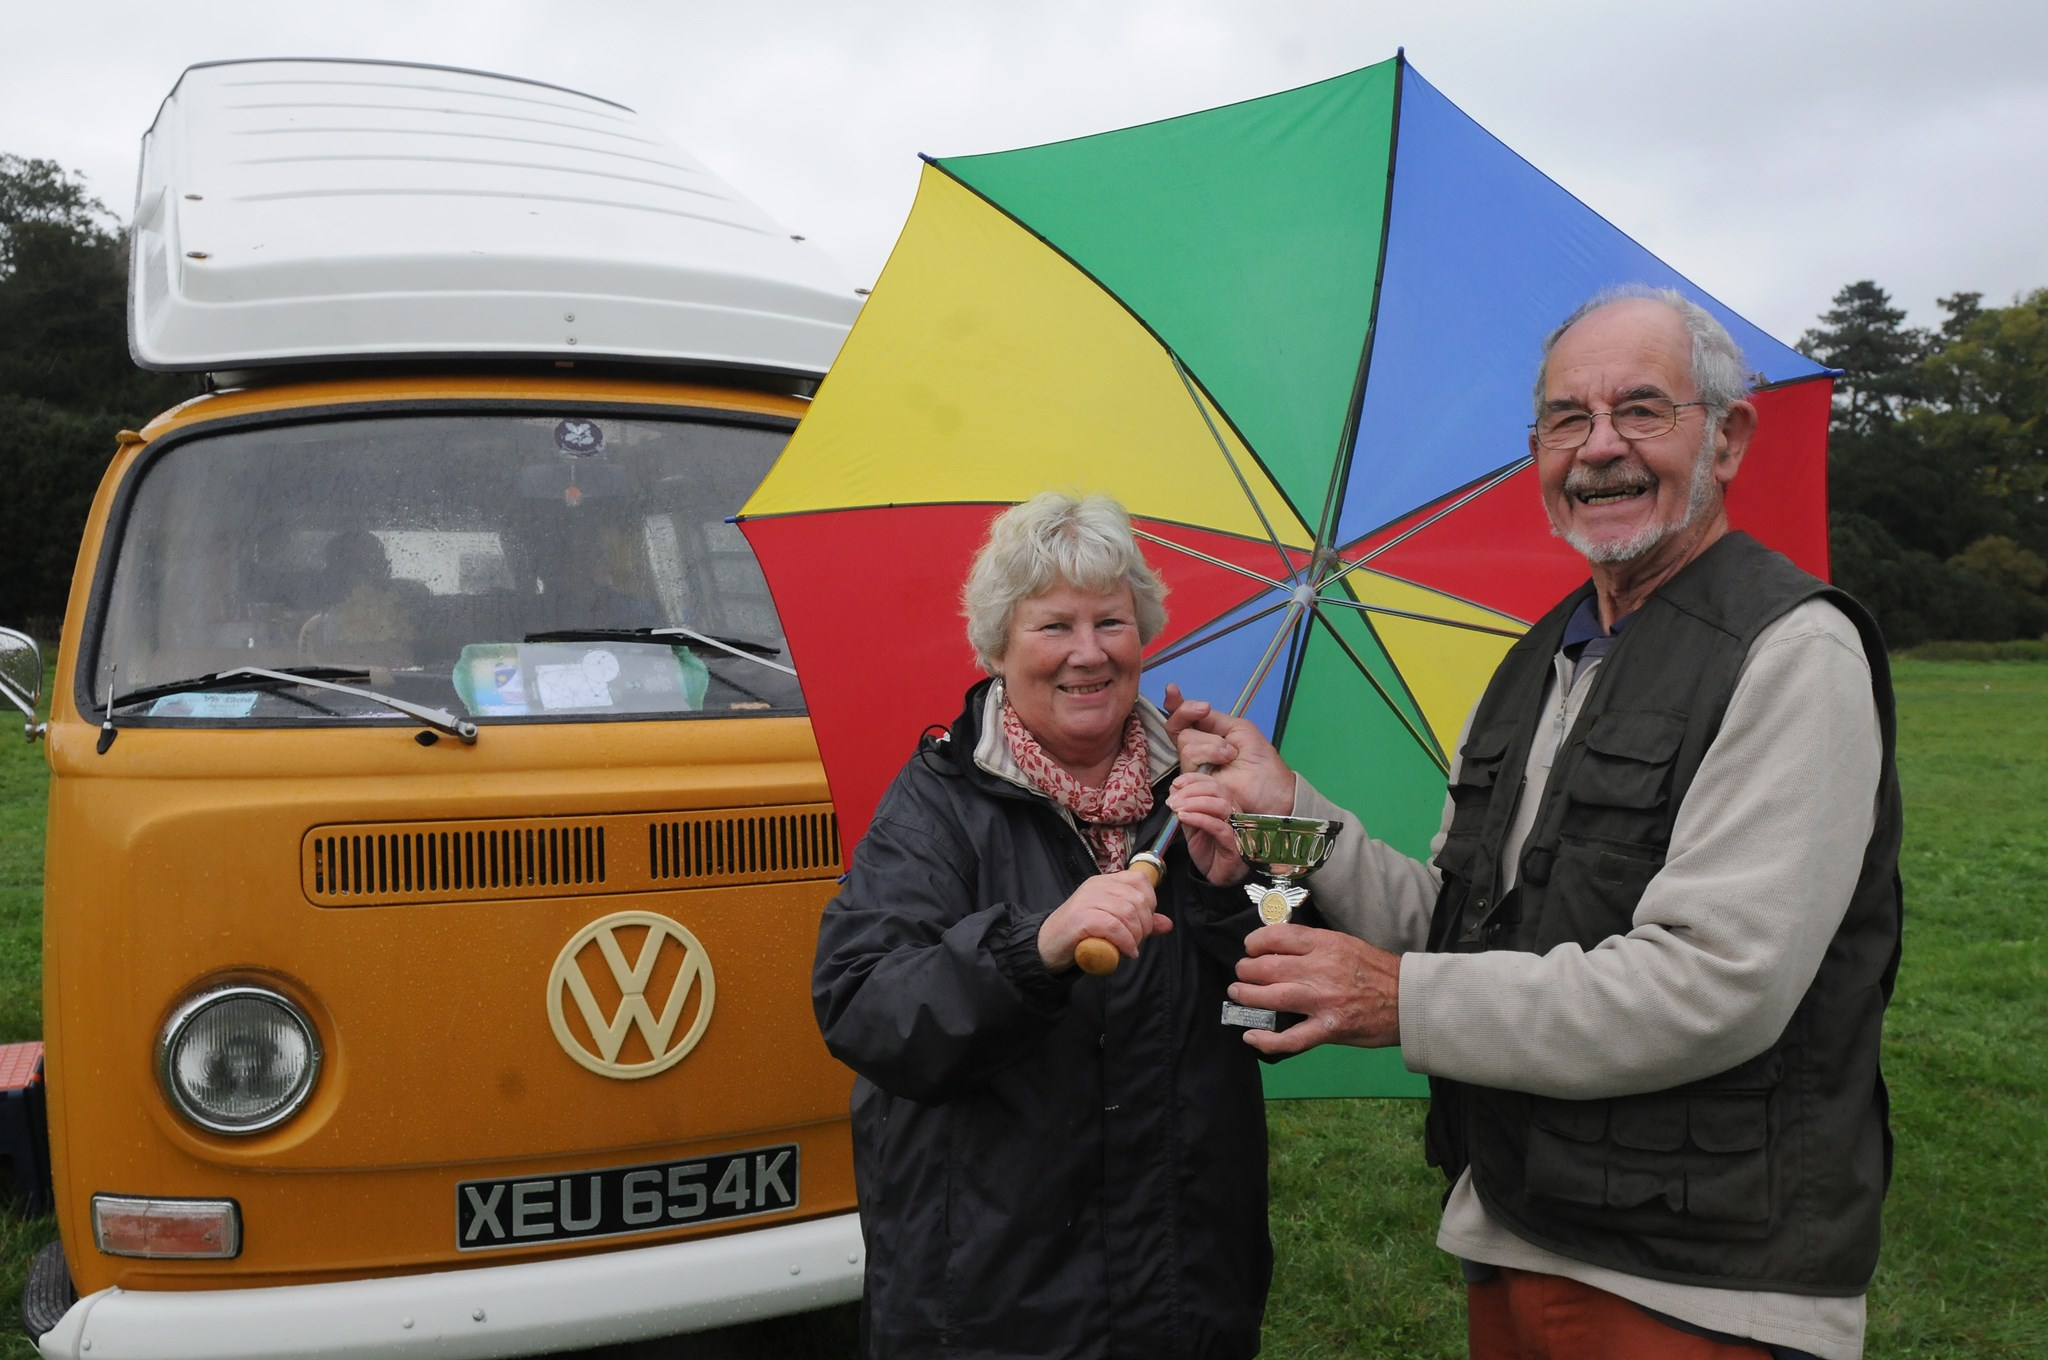 A proud moment when Mum and Dad won a trophy at the Berkely VW Show 2013.